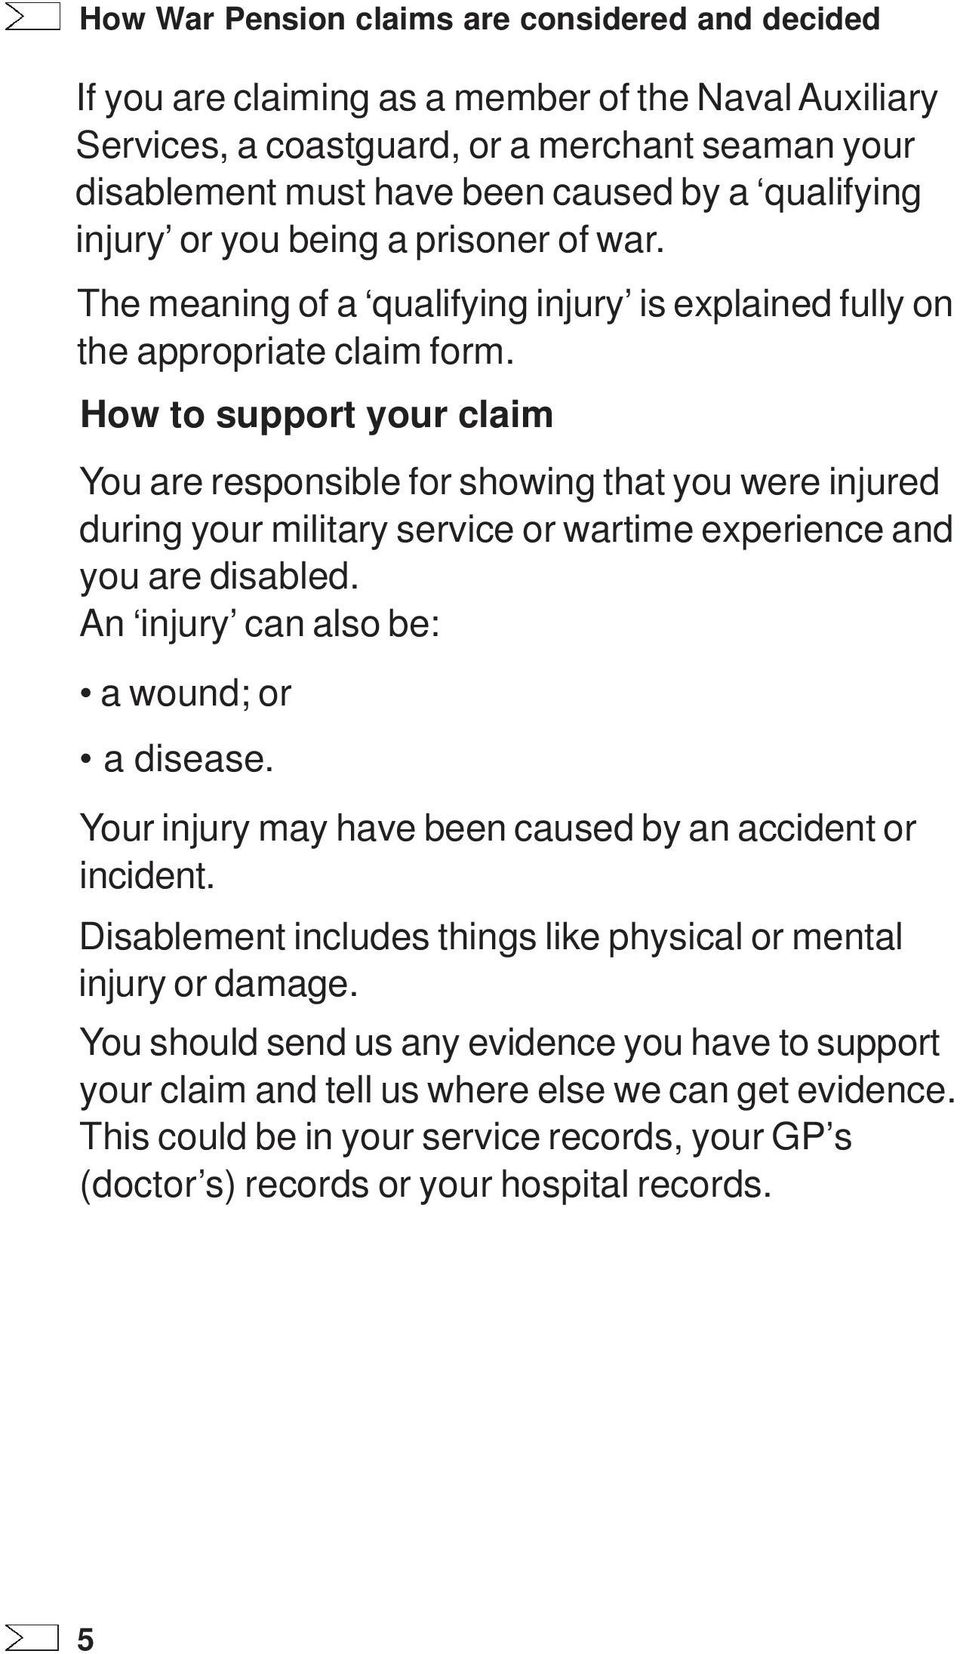 How to support your claim You are responsible for showing that you were injured during your military service or wartime experience and you are disabled. An injury can also be: a wound; or a disease.